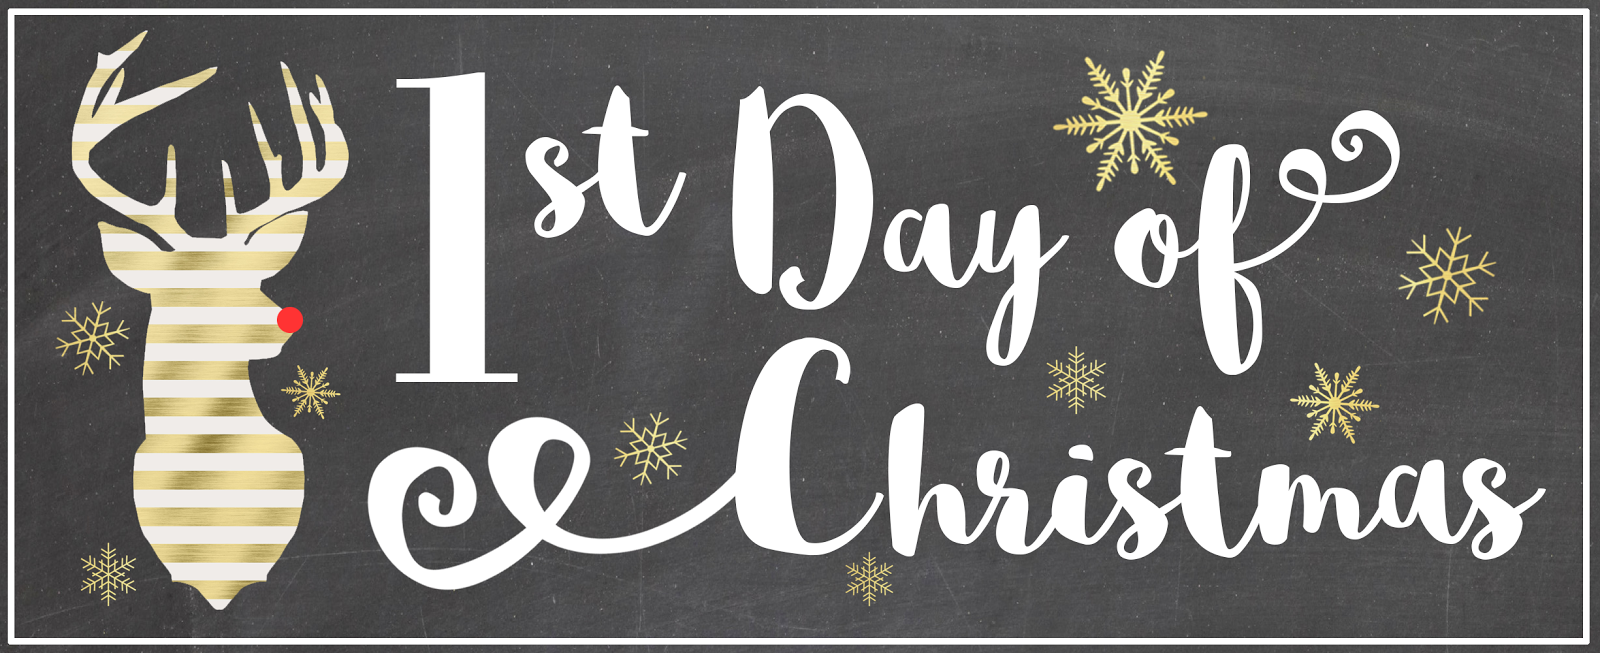 Aly dosdall 1st day of christmas envelope christmas countdown idea for a diy christmas countdown that you and your loved ones can enjoy together its not too late to make one for yourself solutioingenieria Images